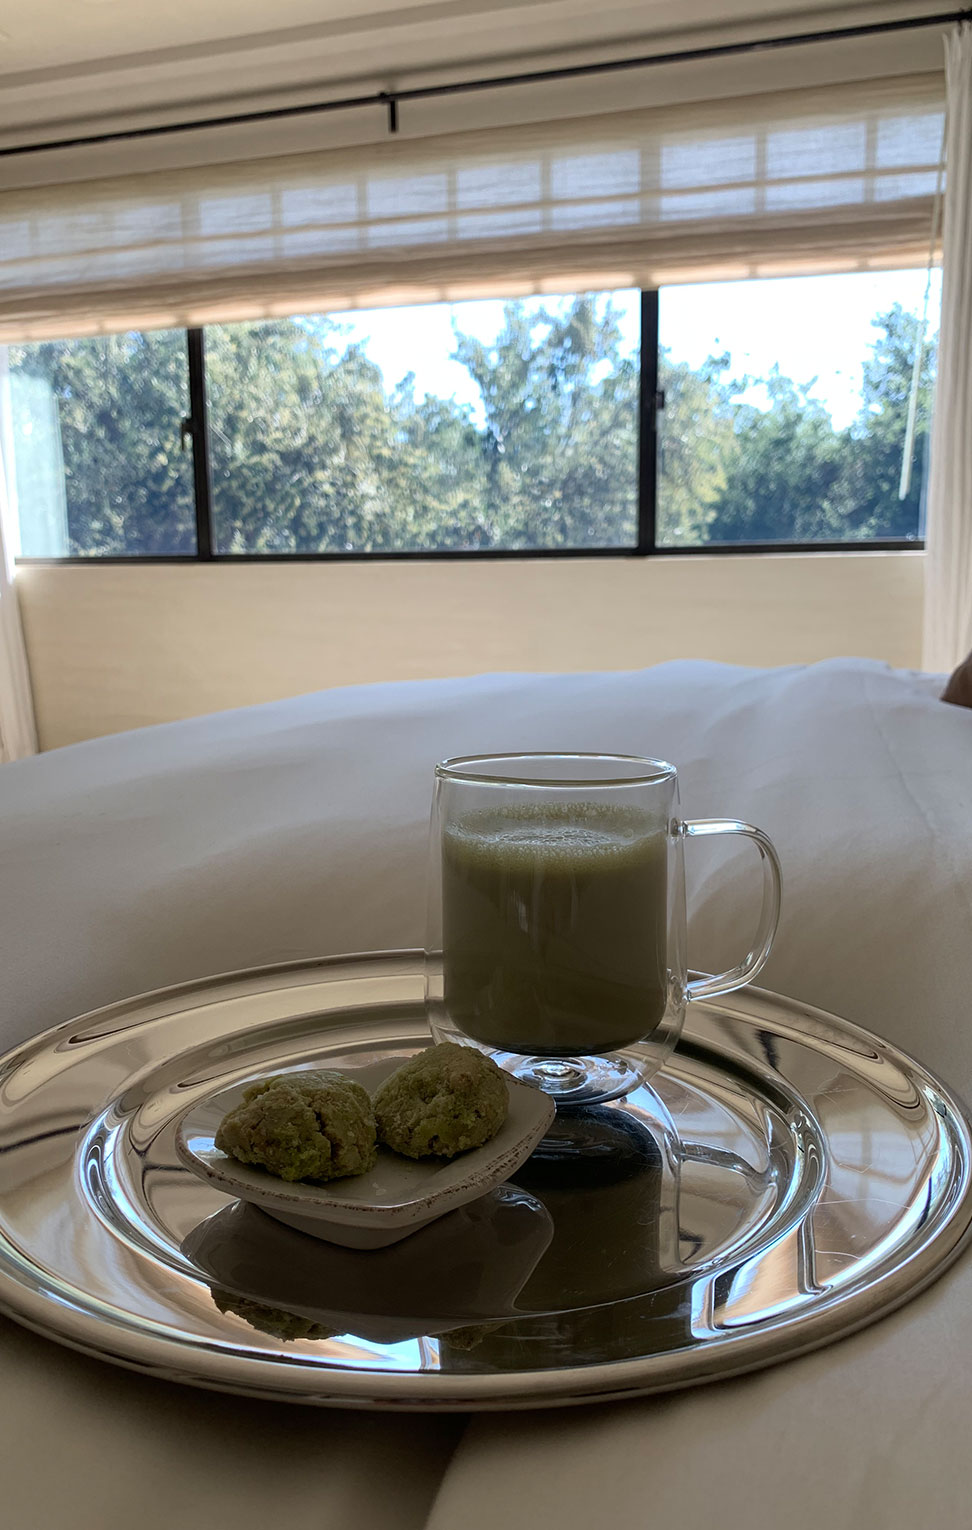 matcha latte with cookies in bed